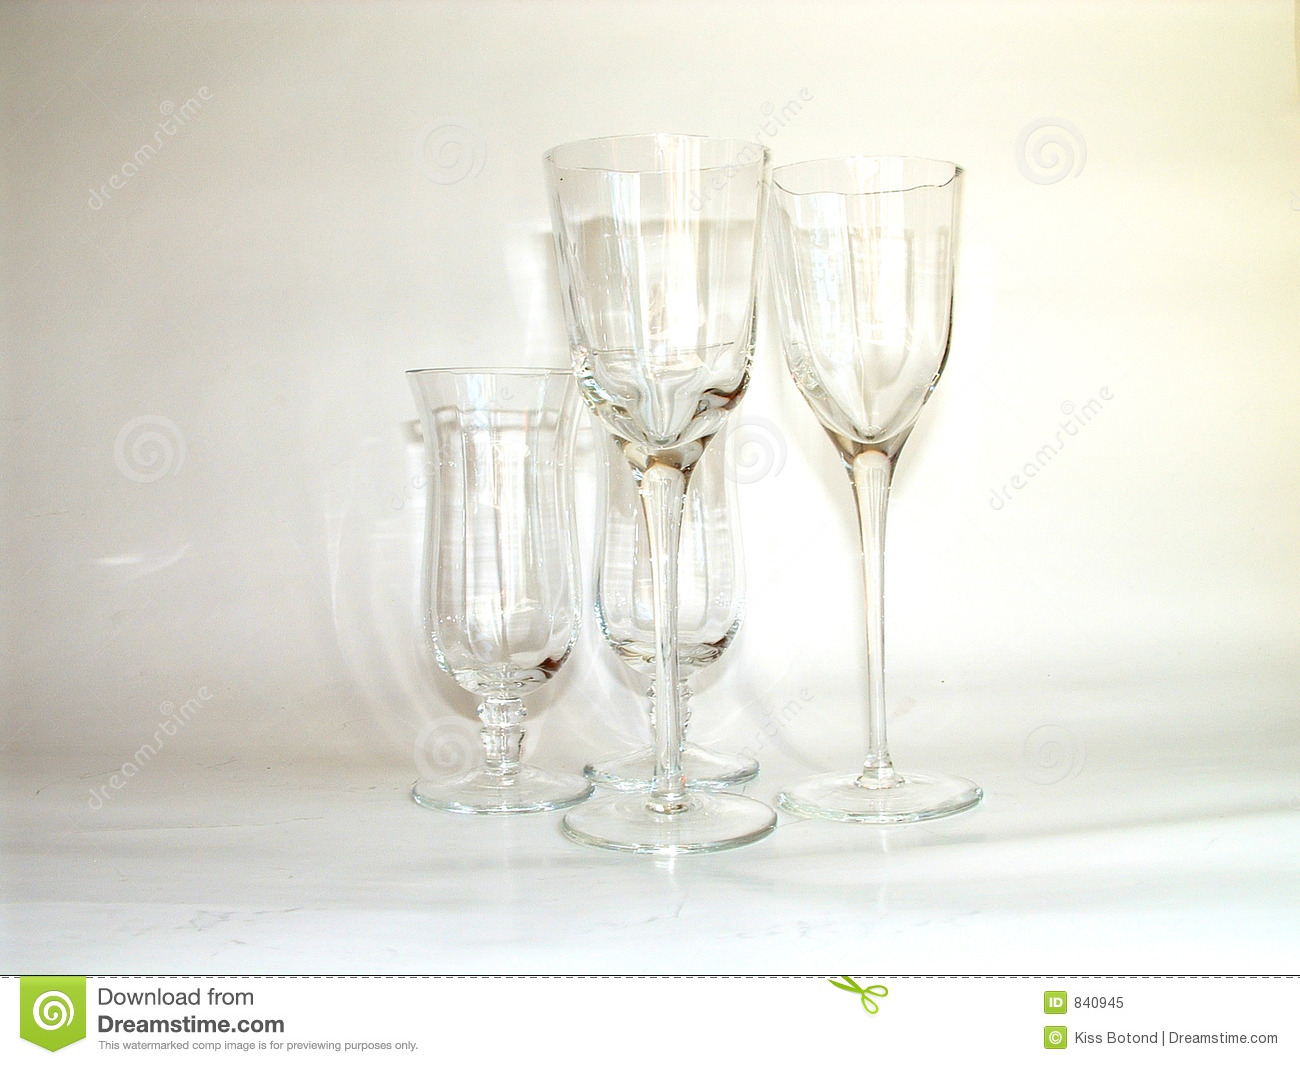 Glasses on creamy background